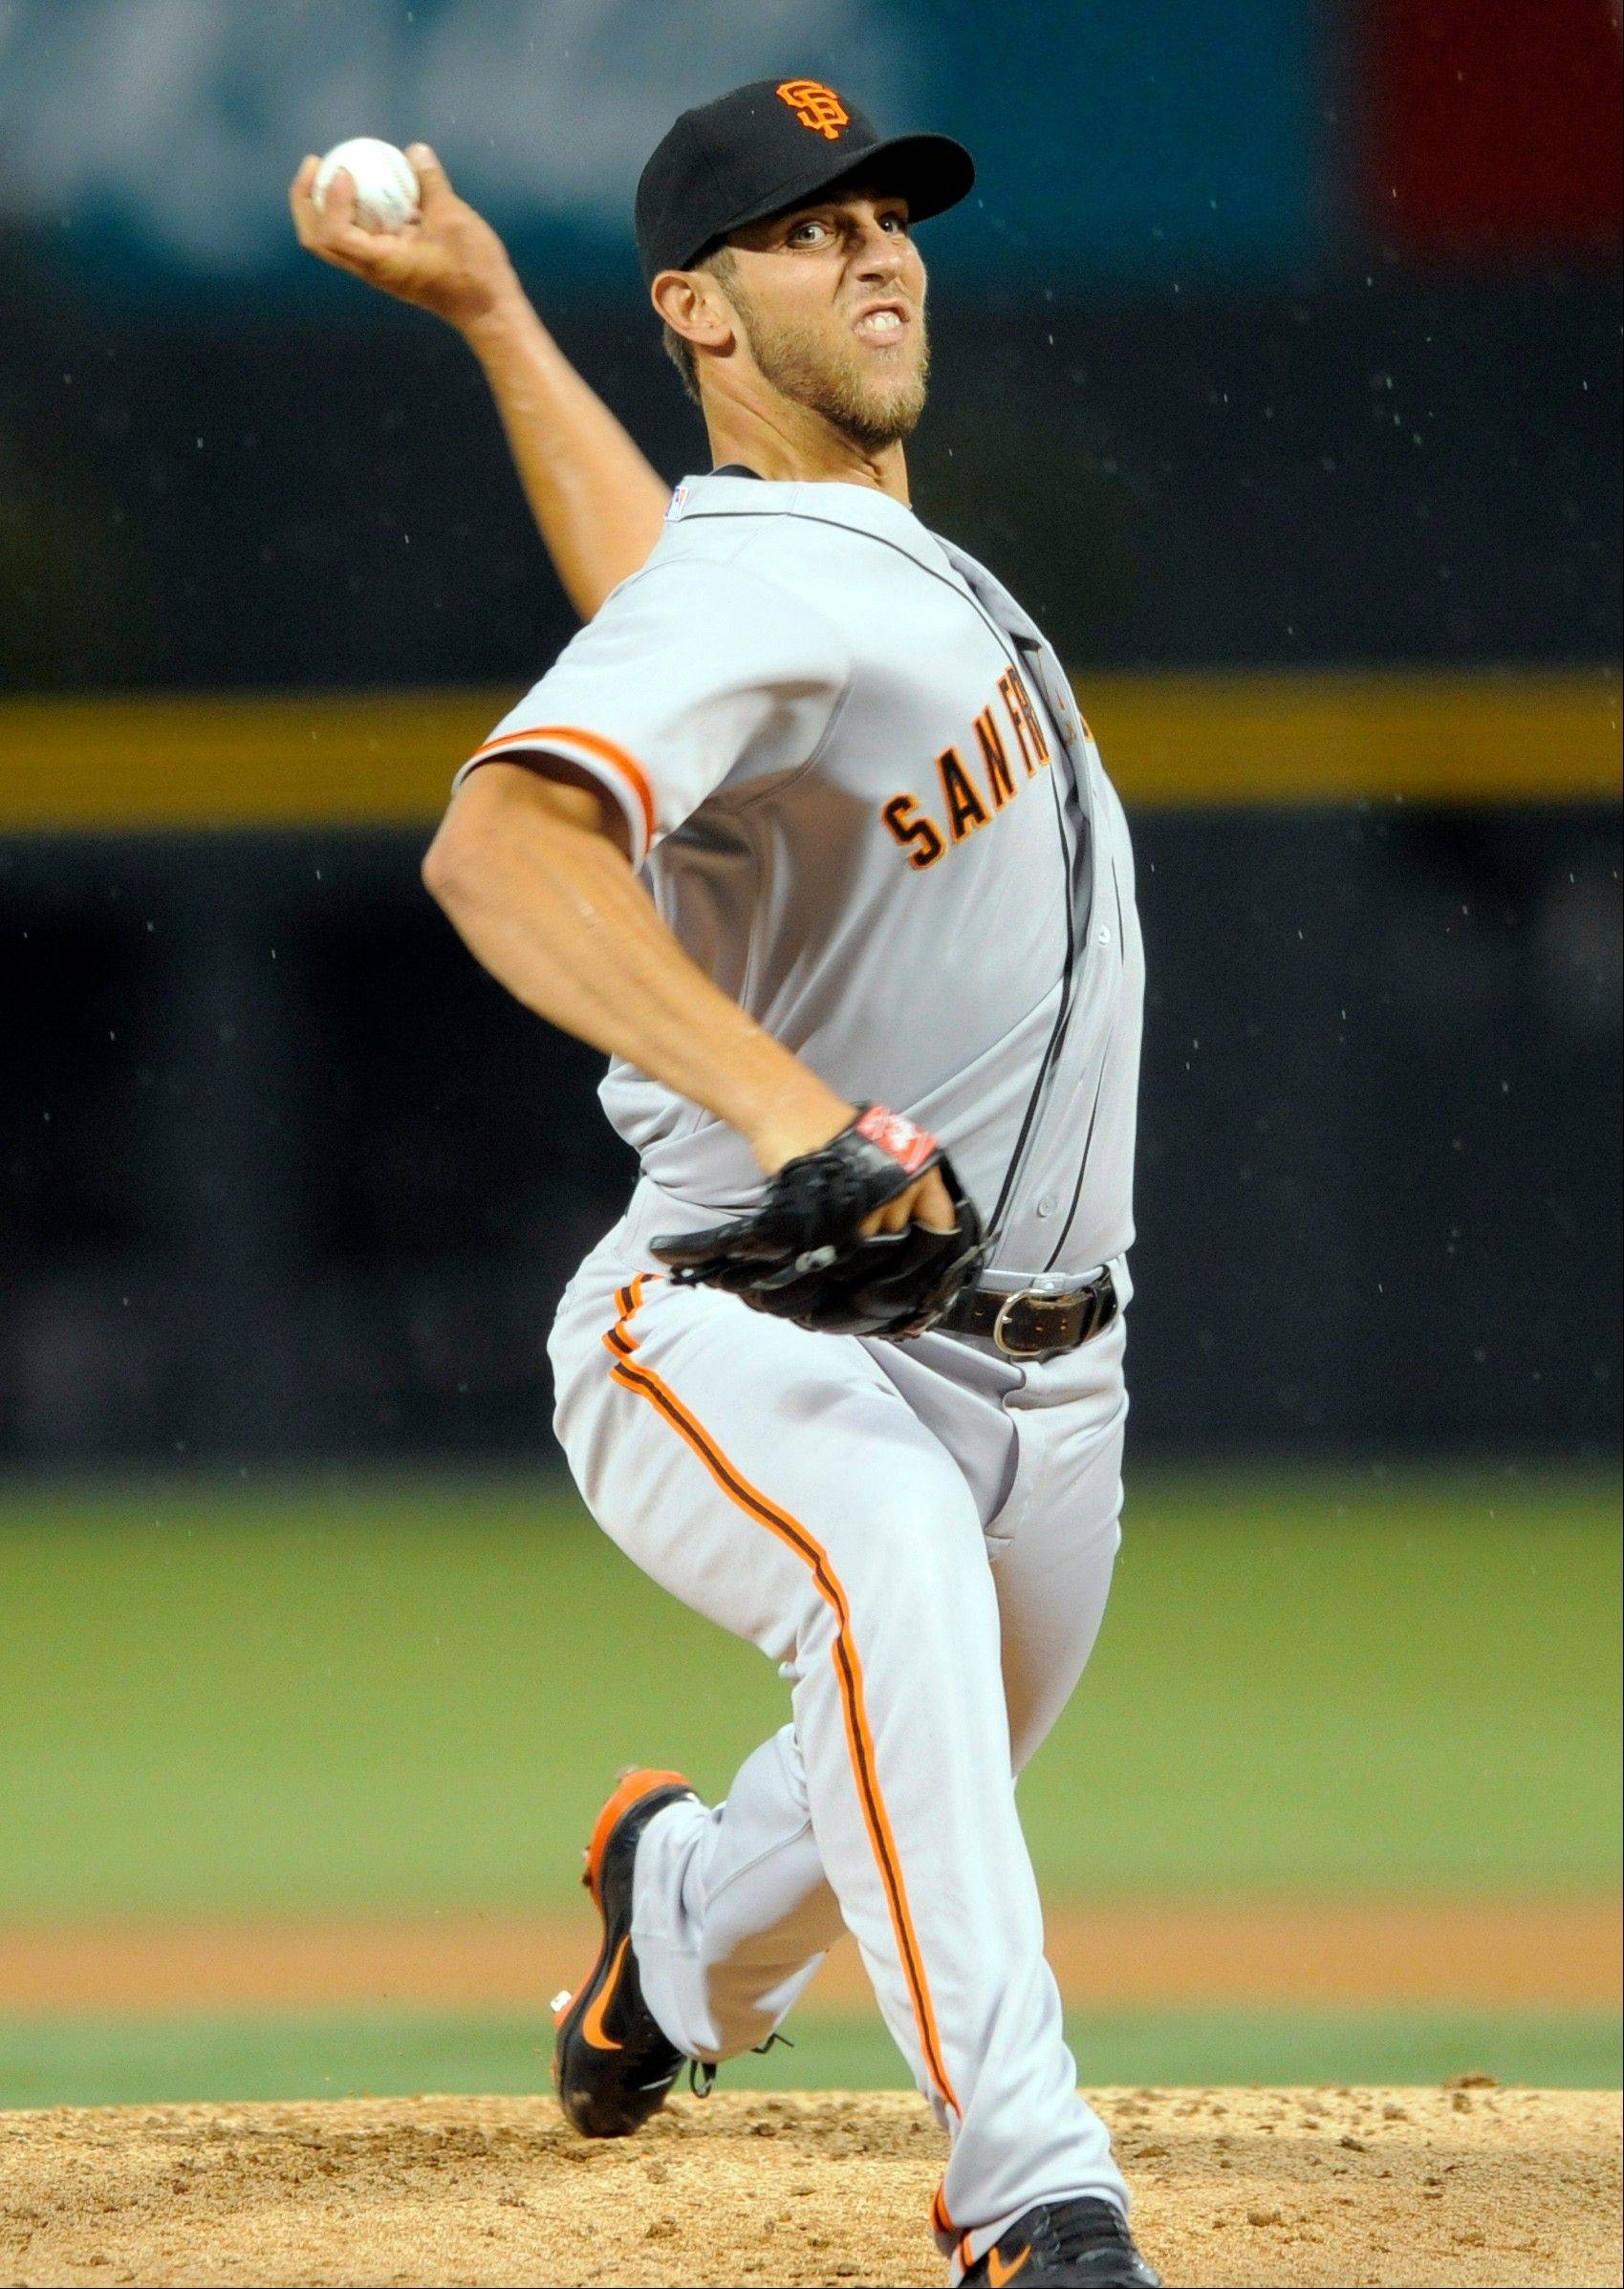 San Francisco Giants starting pitcher Madison Bumgarner was roughed up by the Rockies, allowing five runs and 11 hits in 4 1-3 innings on Tuesday in Denver.